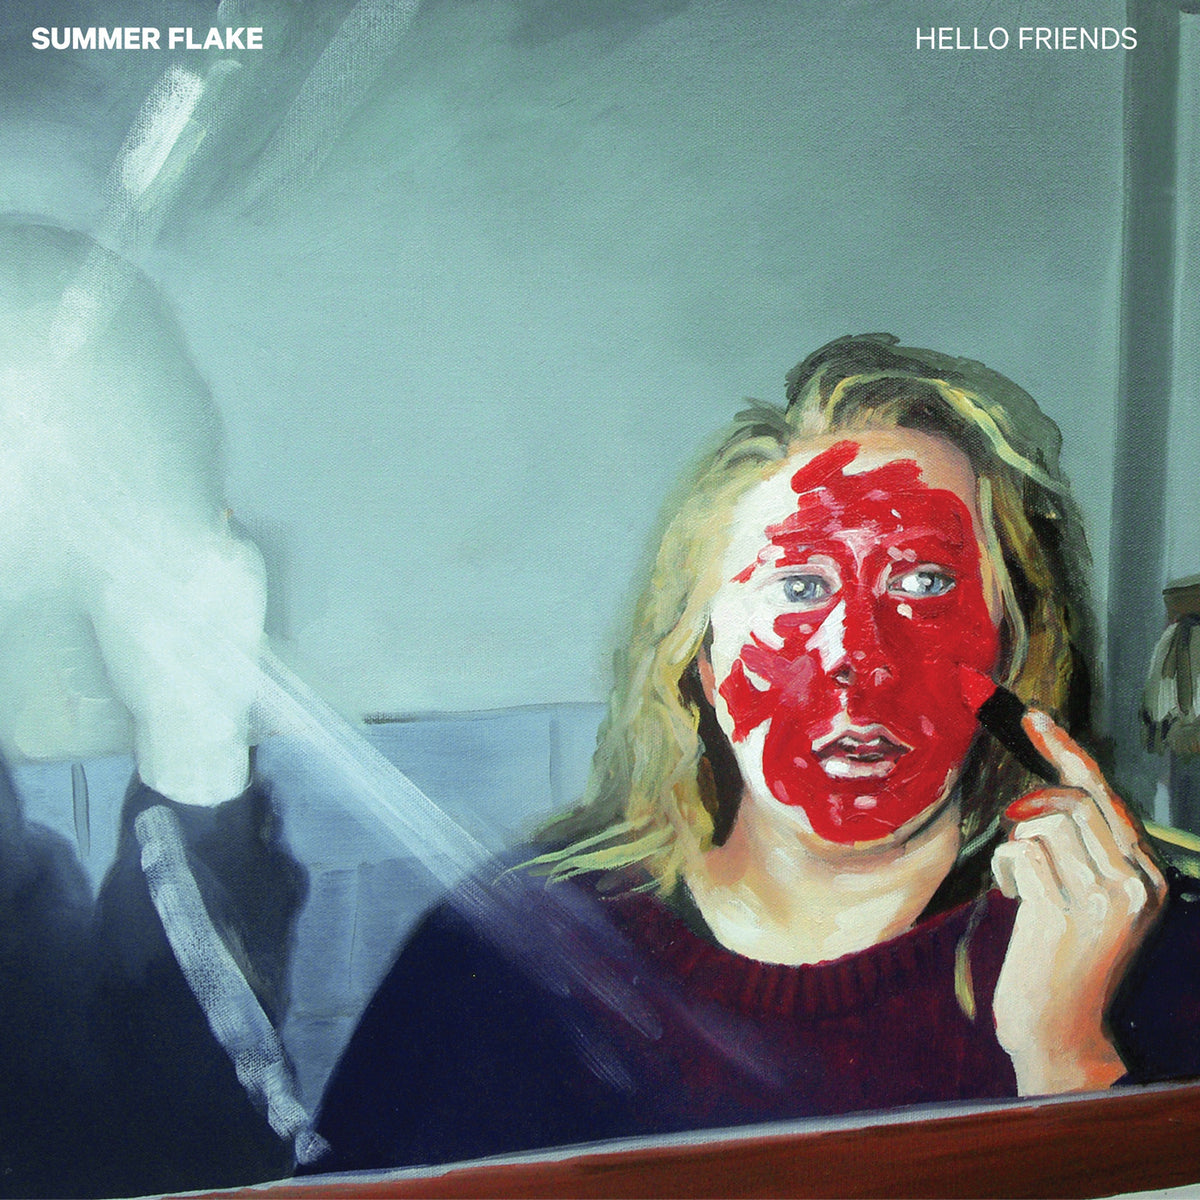 Summer Flake - Hello Friends